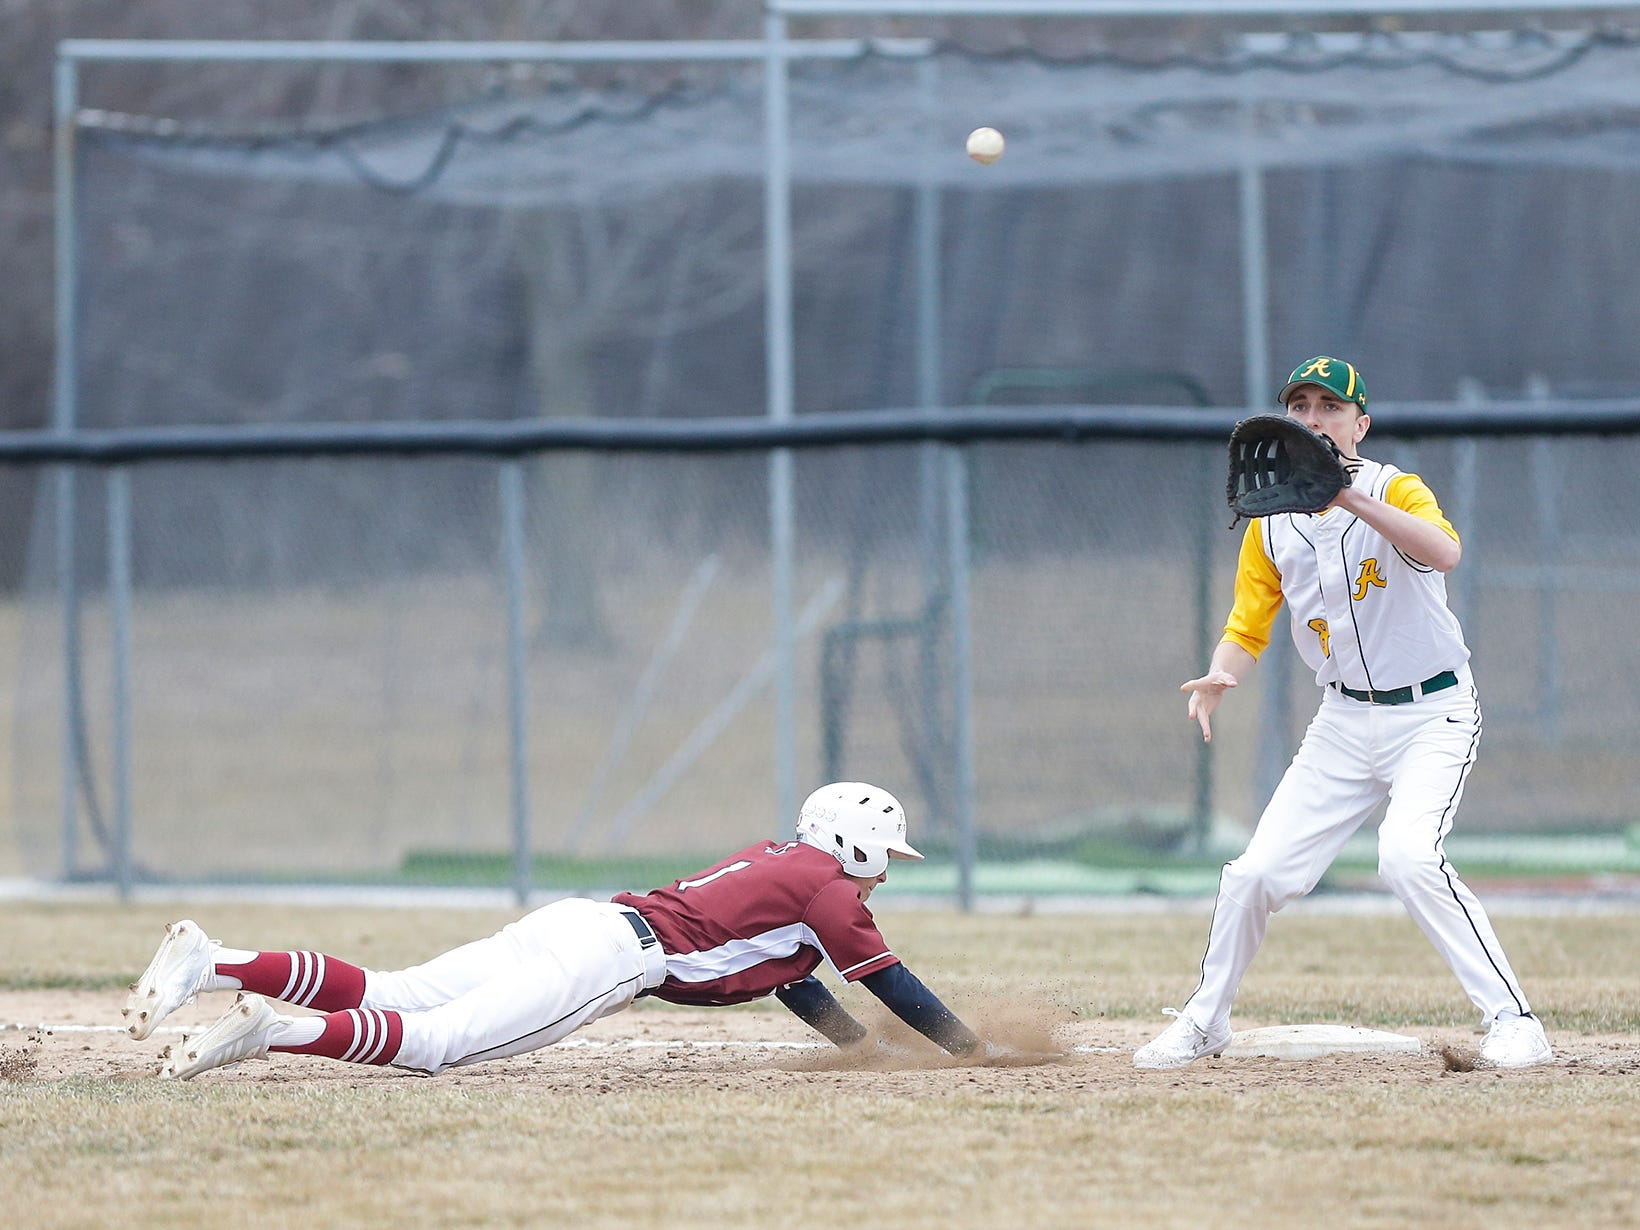 Fond du Lac High School baseball's Caden Krug (1) dives back to first to avoid a tag by Ashwaubenon High School's Ben Wendorf (8) Saturday, April 6, 2019 during their game in Fond du Lac, Wis. Fond du Lac won the game 5-3. Doug Raflik/USA TODAY NETWORK-Wisconsin